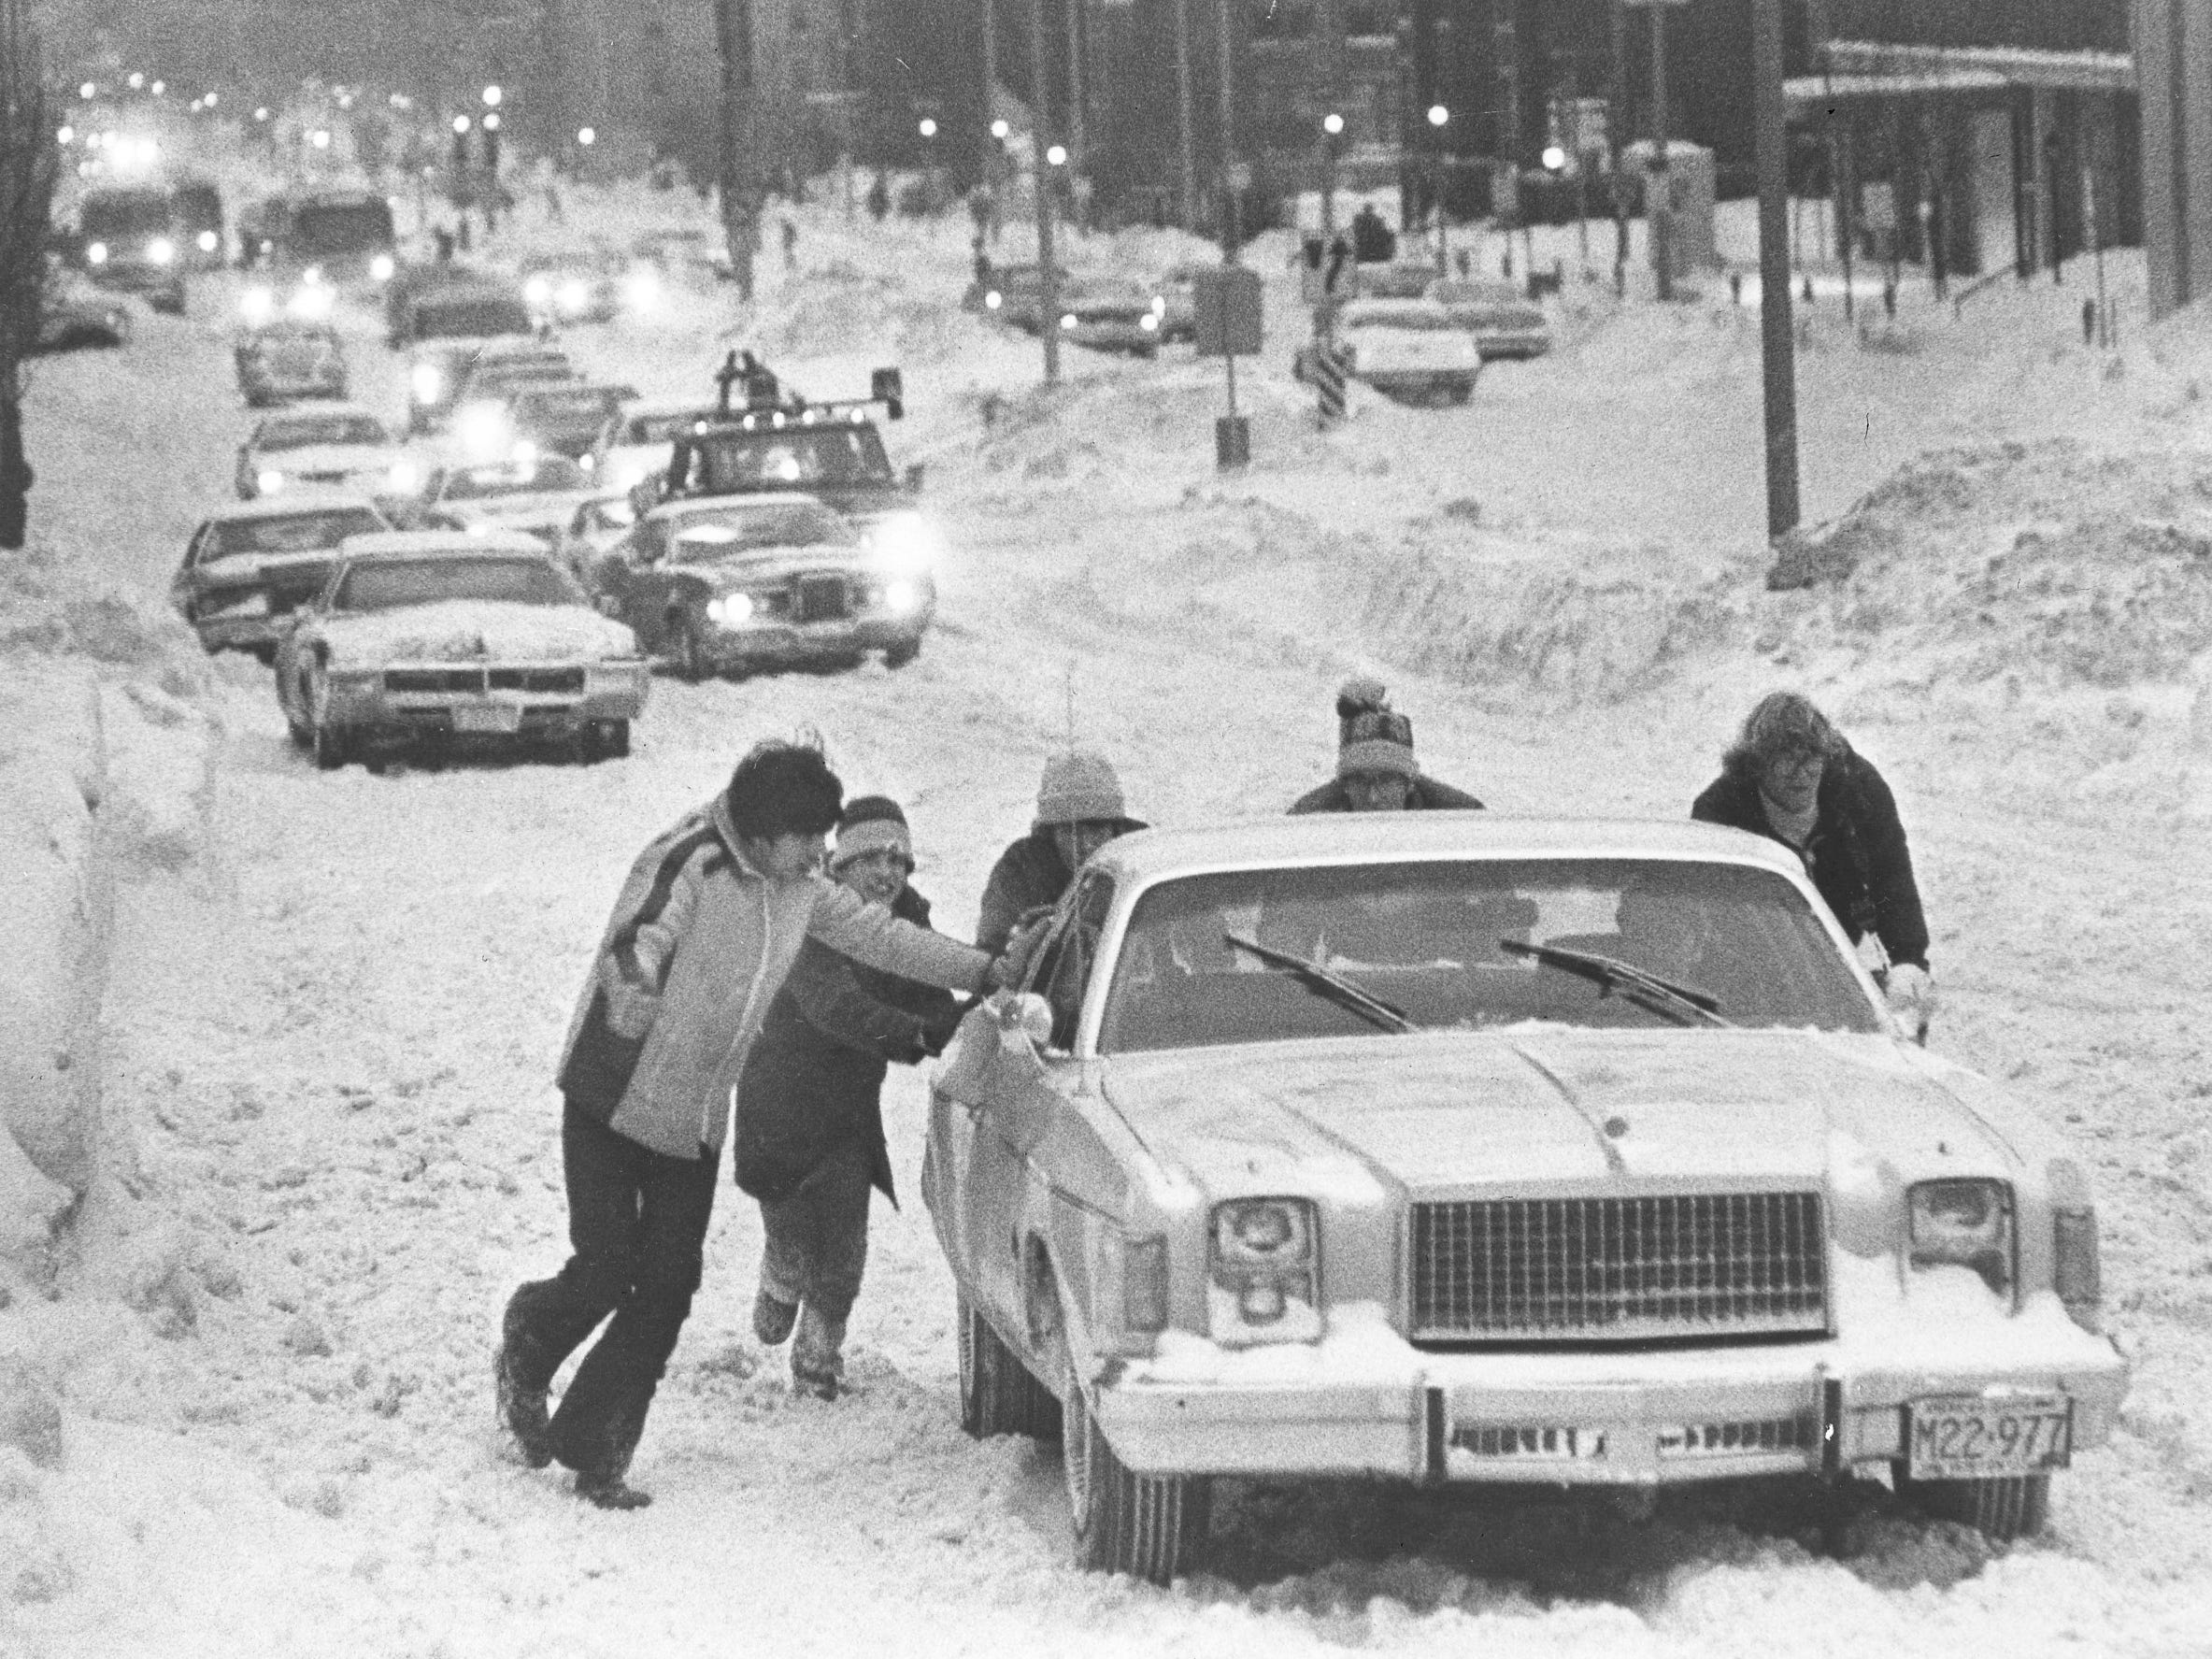 It takes a group effort to get this car back on track on Wisconsin Avenue at North 13th Street during a blizzard on Jan. 24, 1979. Milwaukee was hit with three double-digit snowstorms in less than four weeks that winter. This photo was published in the Jan. 25, 1979, Milwaukee Journal.